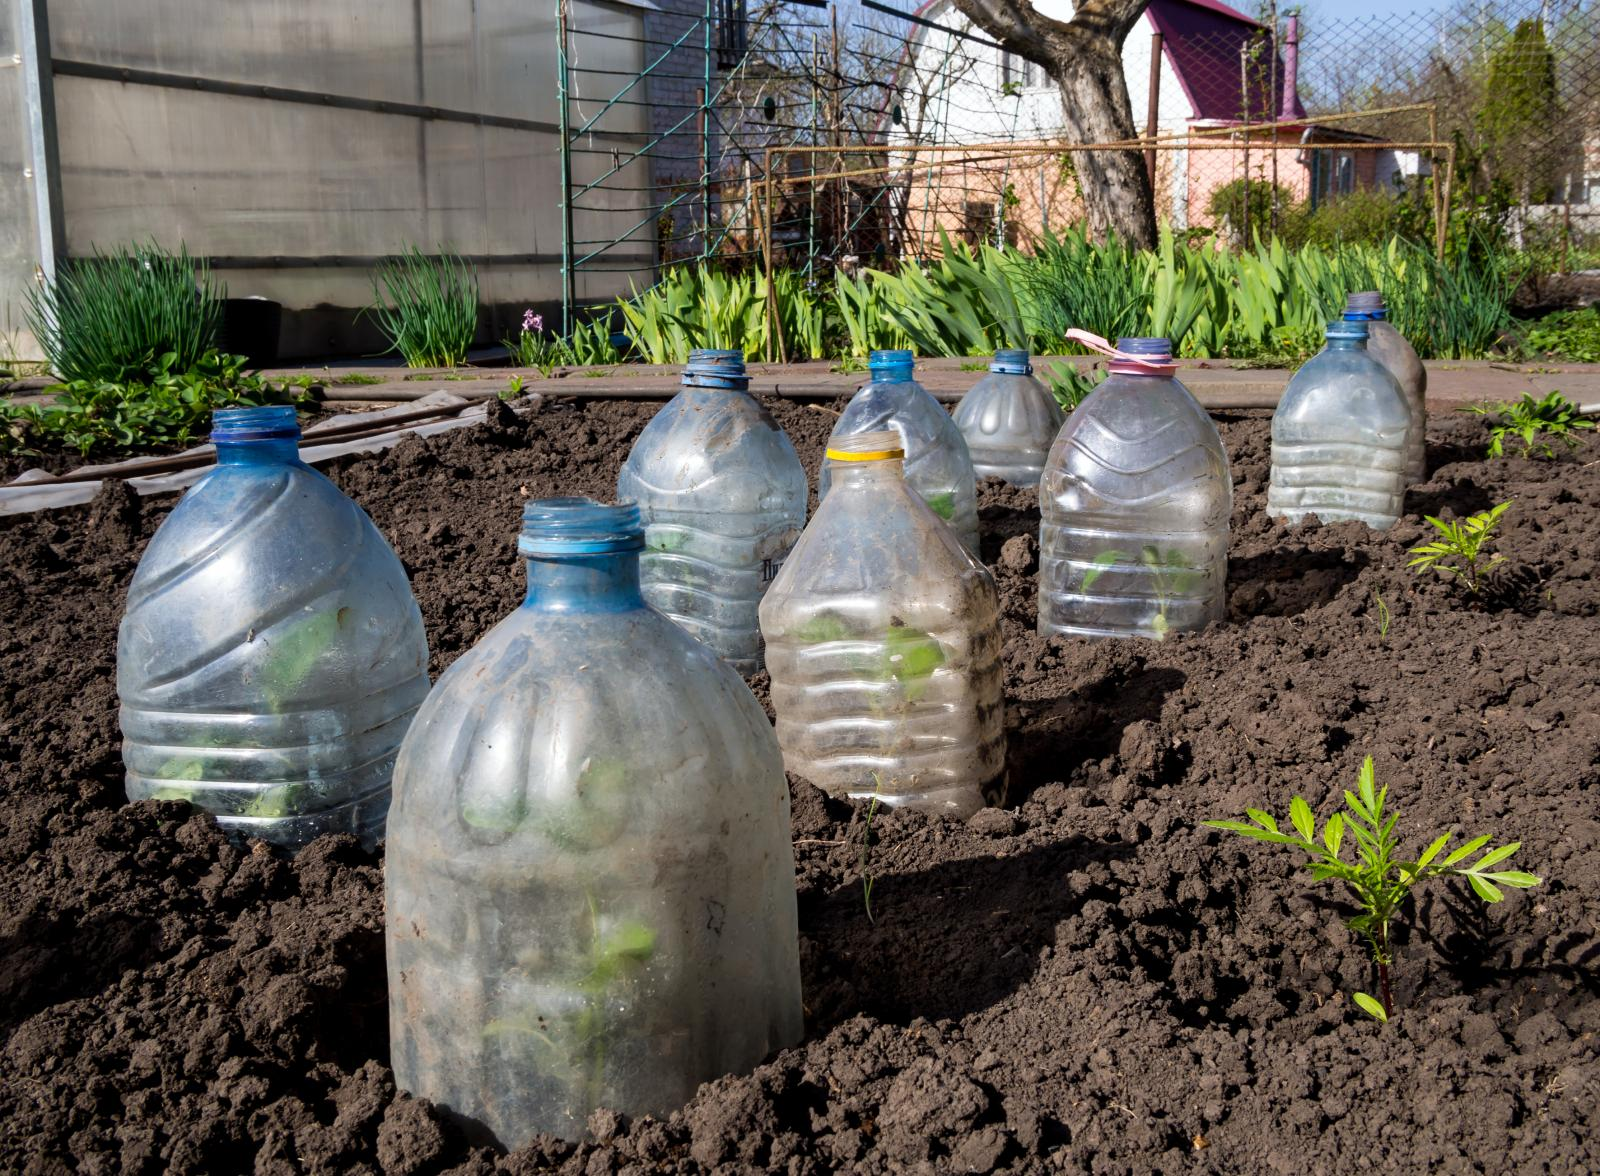 Using plastic bottles to protect plants